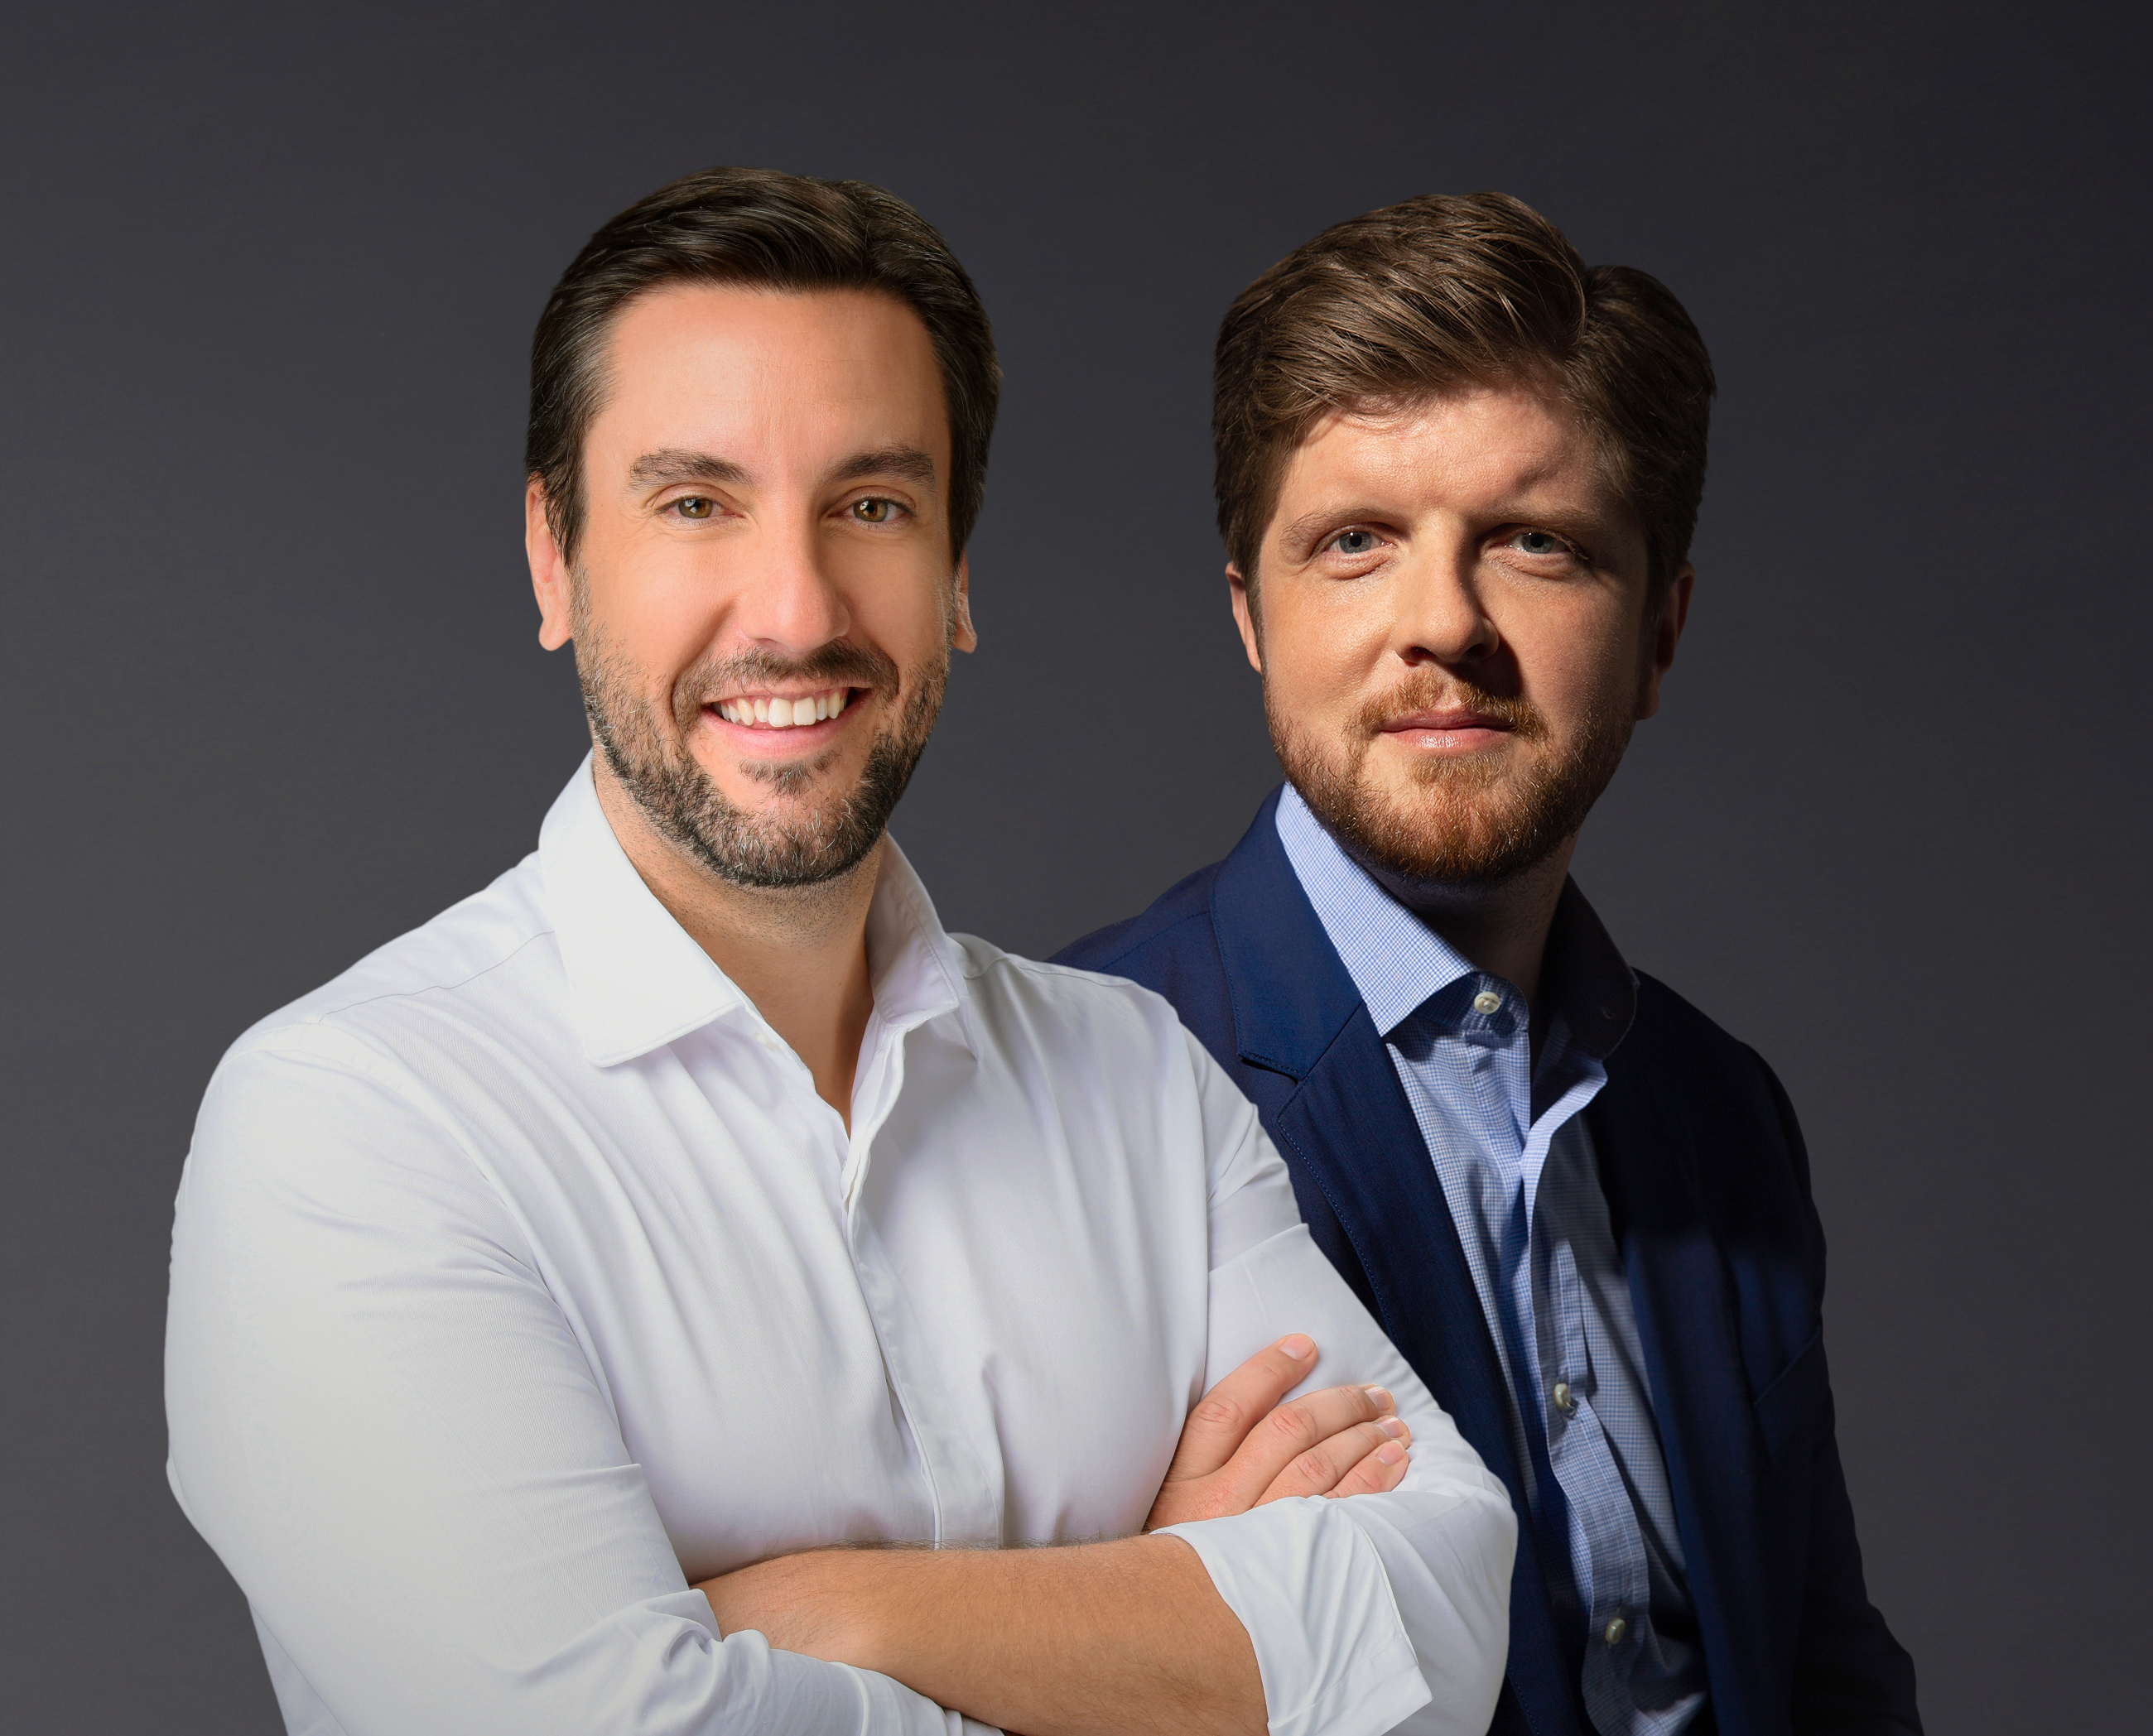 Clay Travis, left, and Buck Sexton were named by Premiere Networks to fill the talk-radio time slot left vacant when Rush Limbaugh died in February 2021.